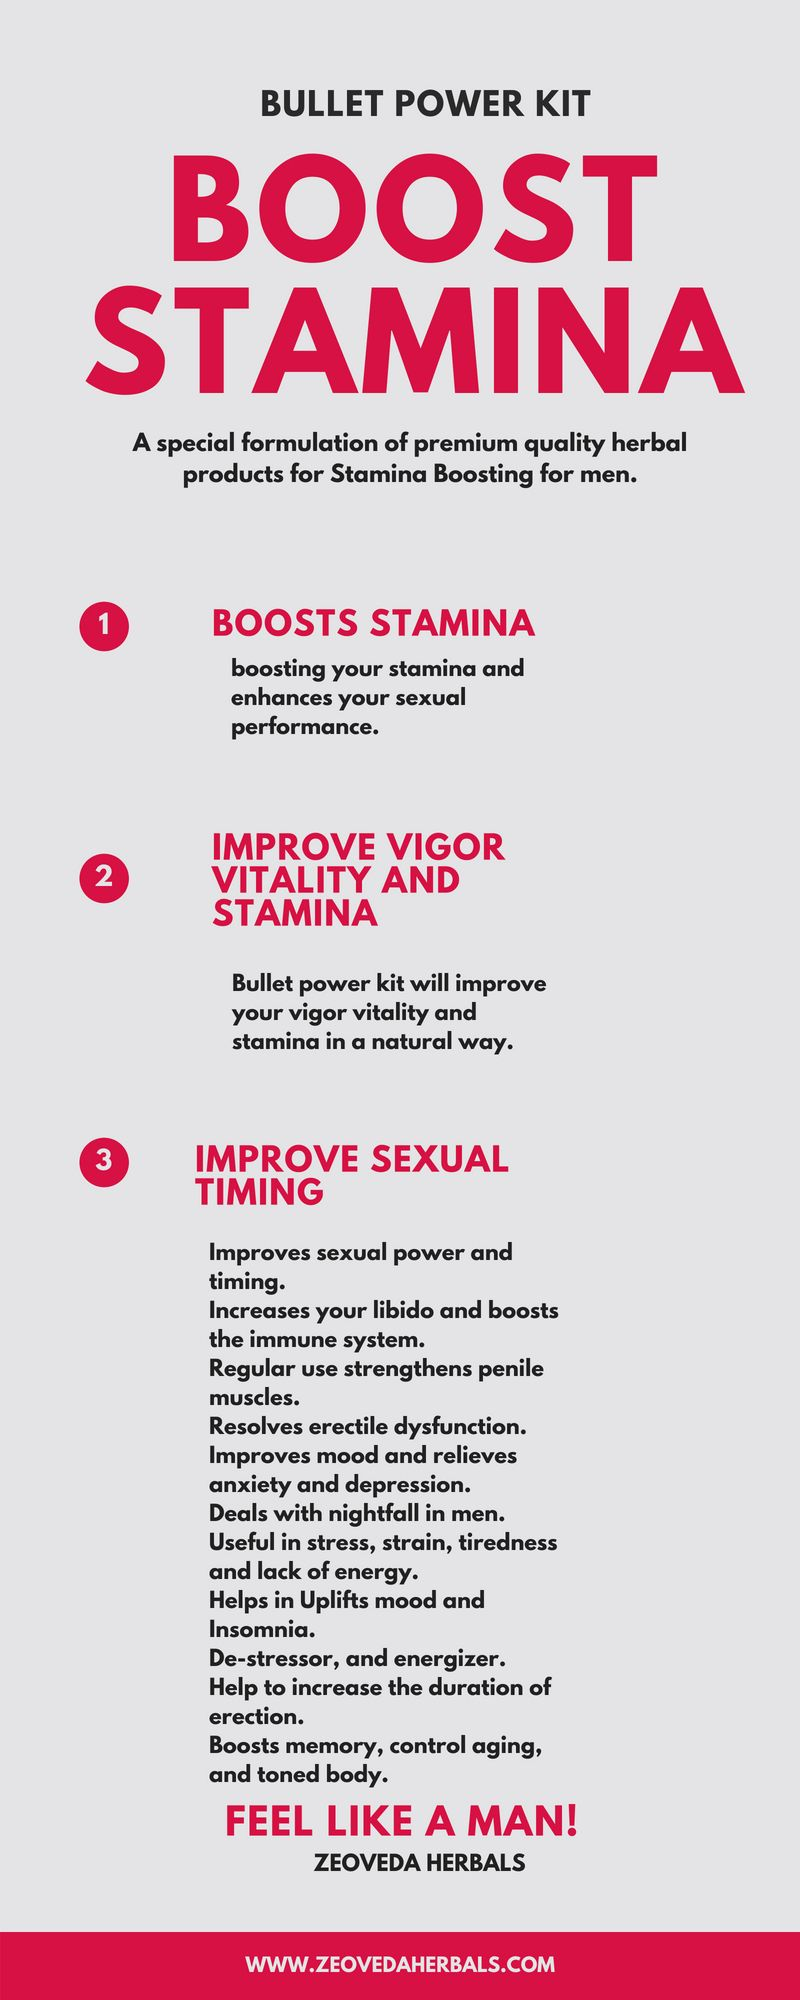 Bullet Power Kit For Boosting Stamina And Timing Also Improve